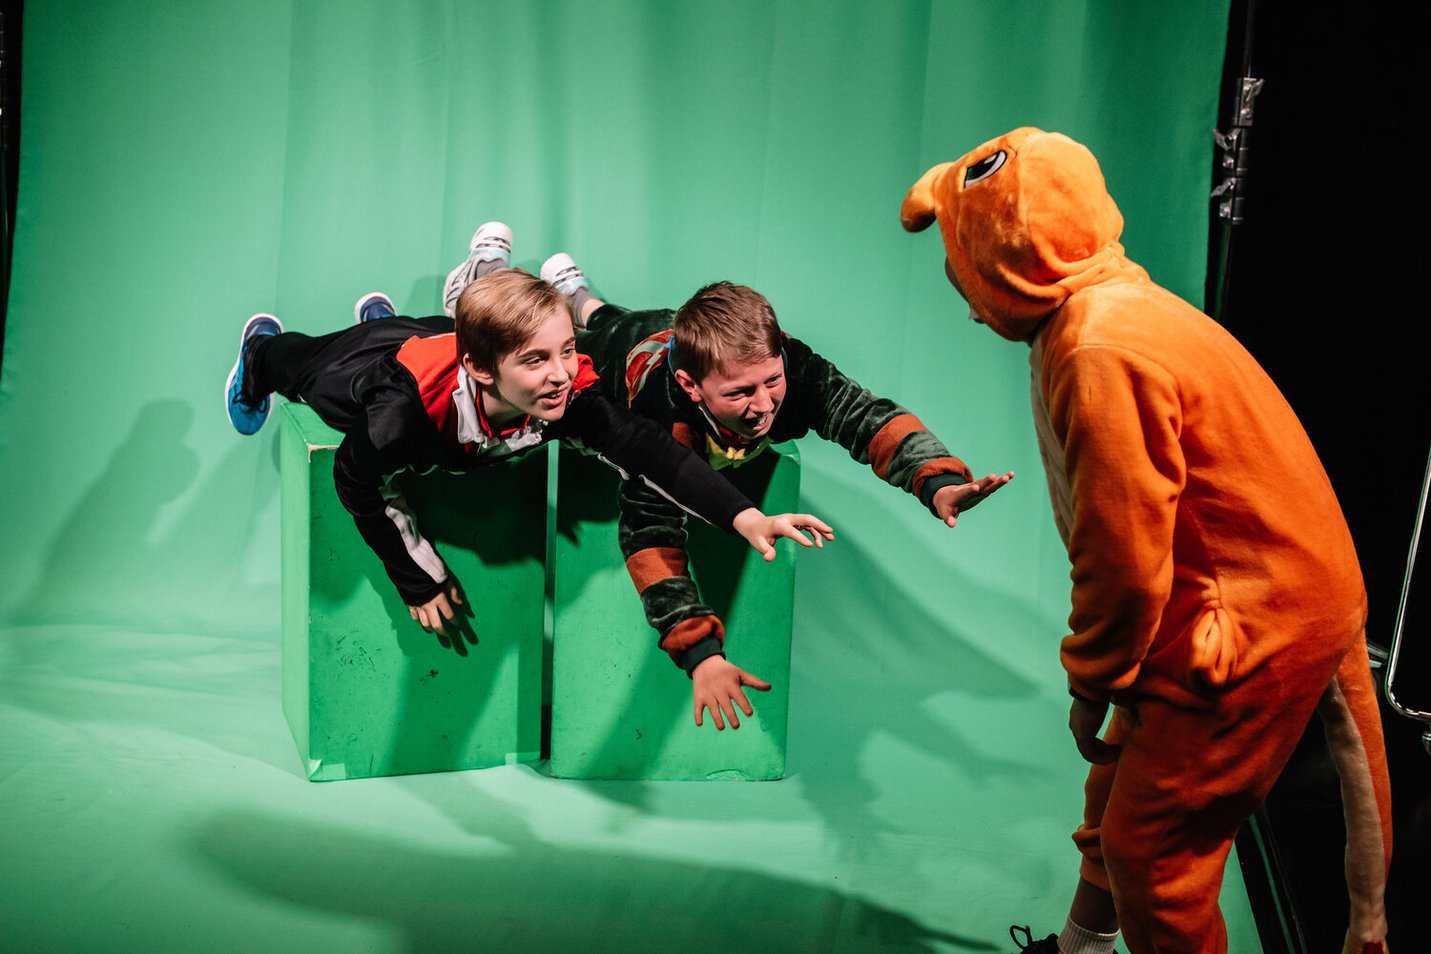 Students from Elsternwick Primary School check out the green screen in the Gandel Digital Future Lab